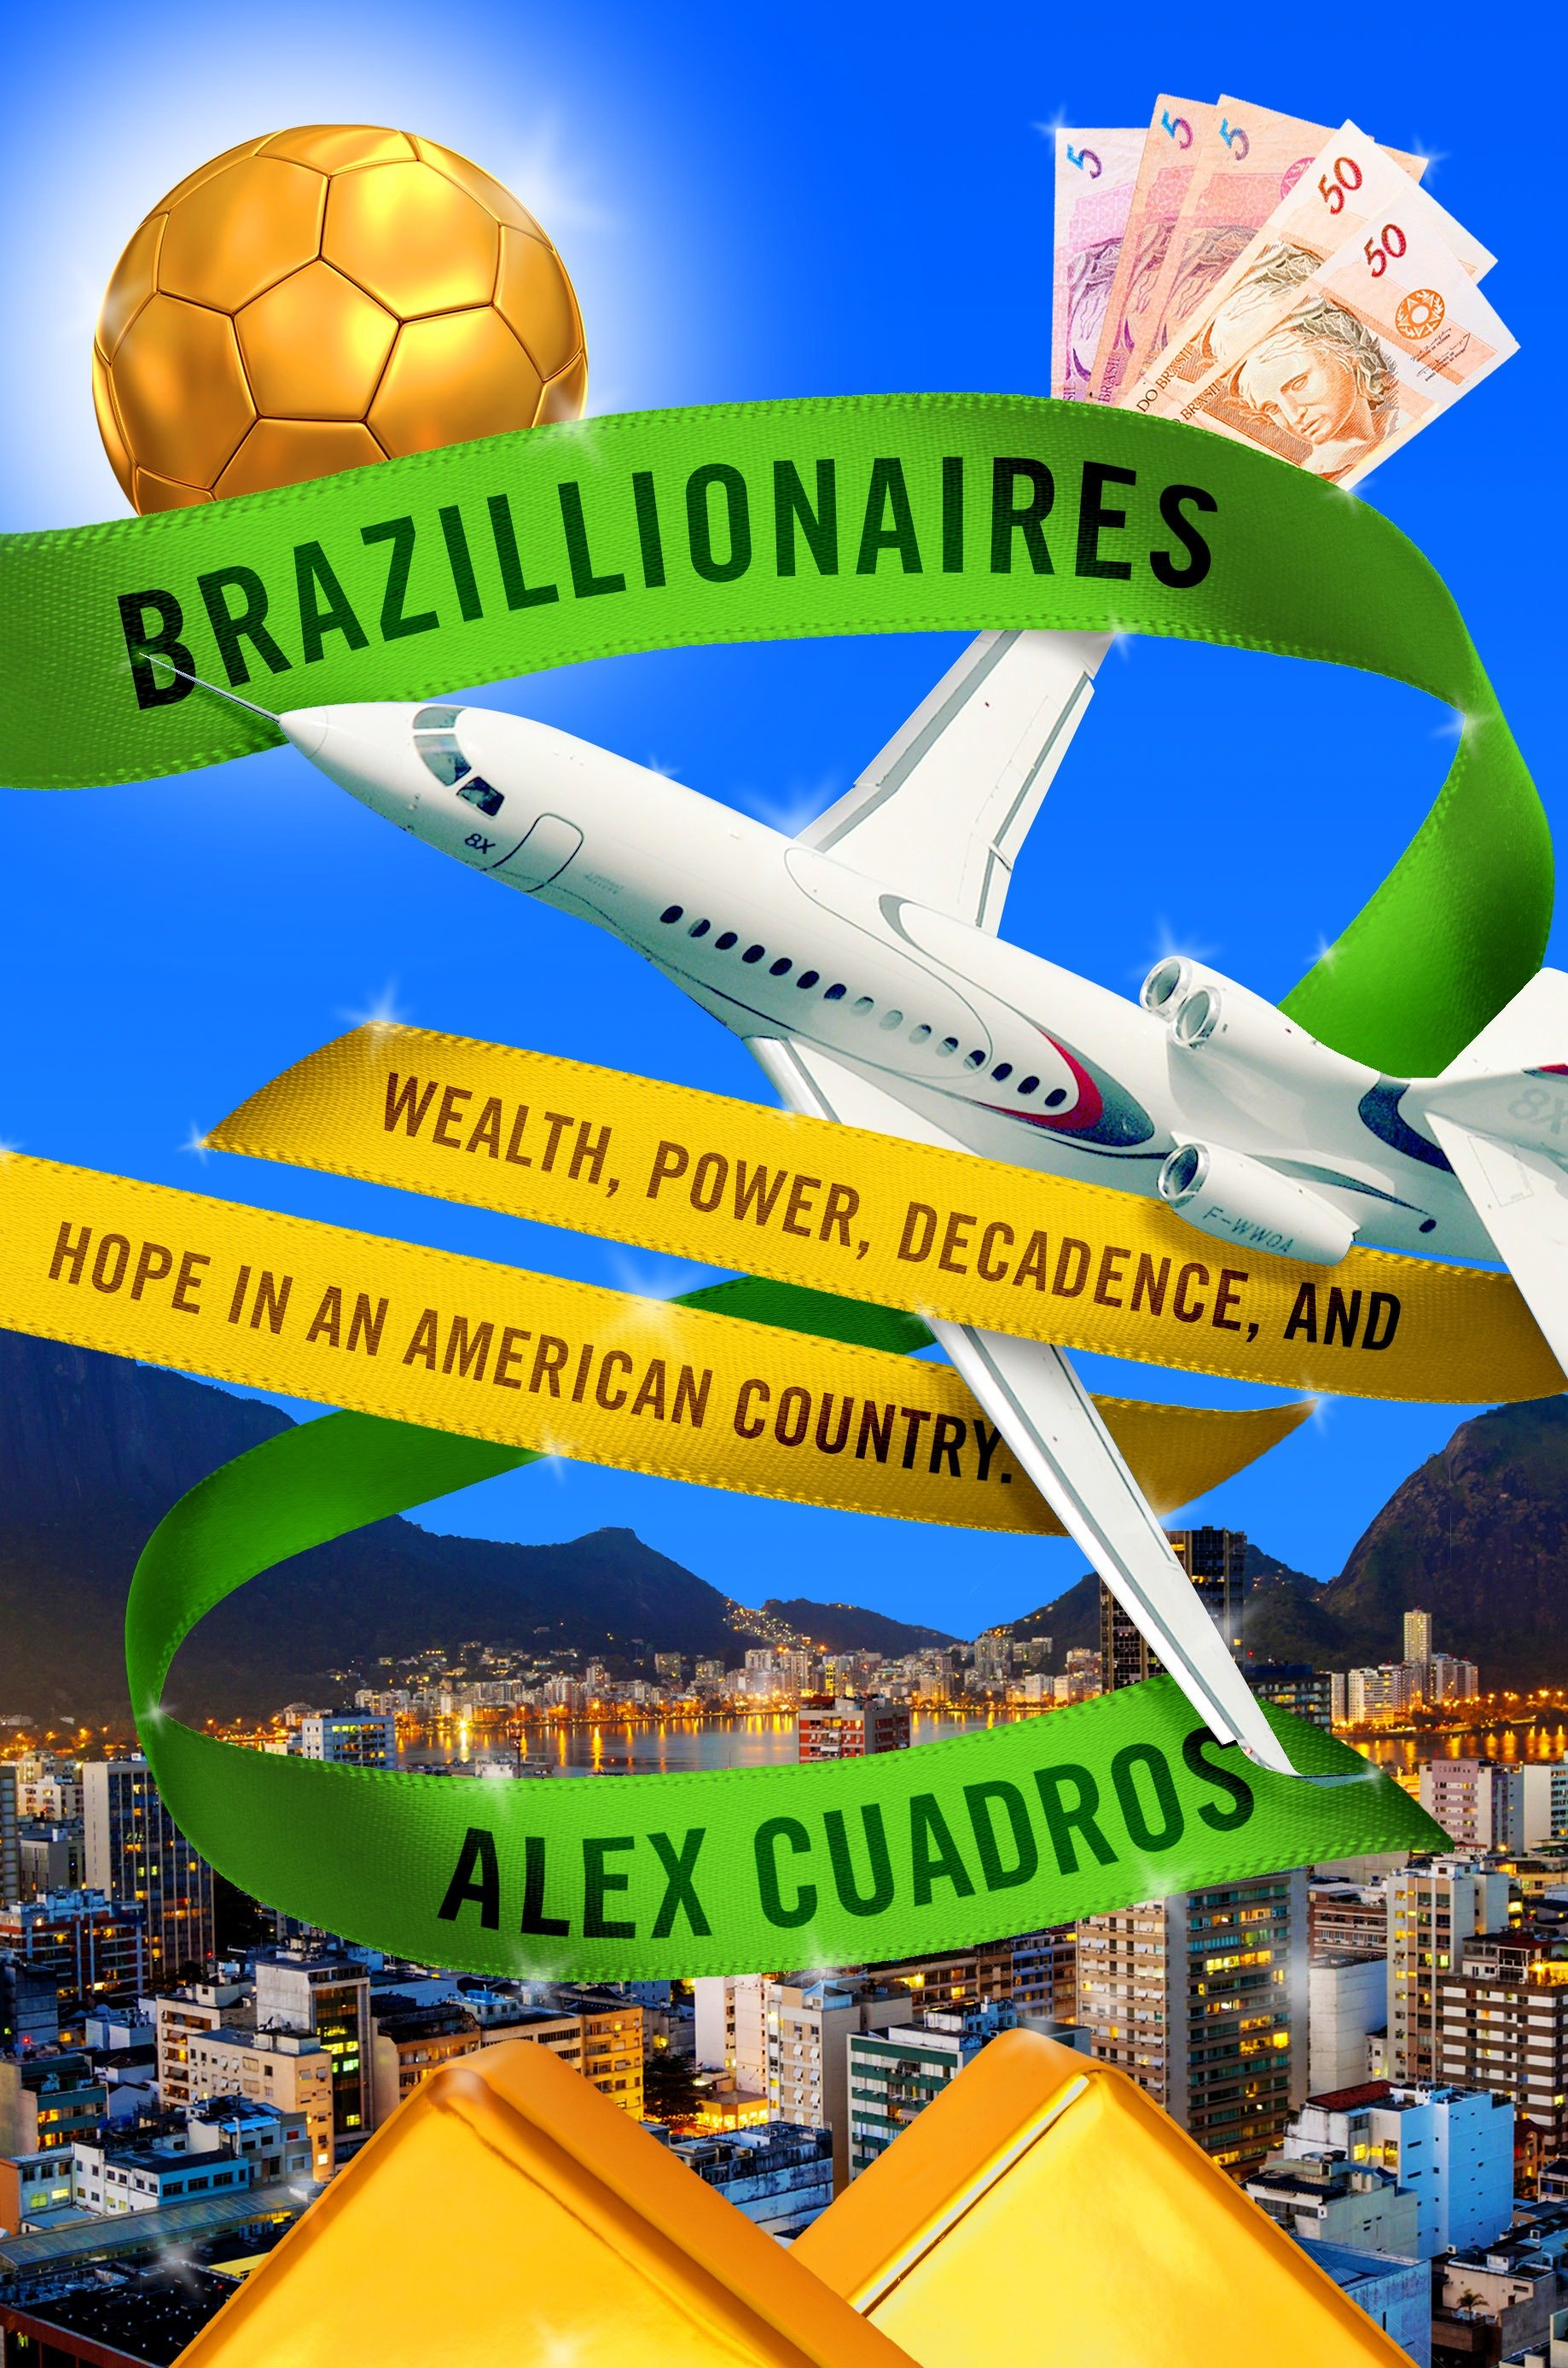 Brazillionaires Wealth, Power, Decadence, and Hope in an American Country